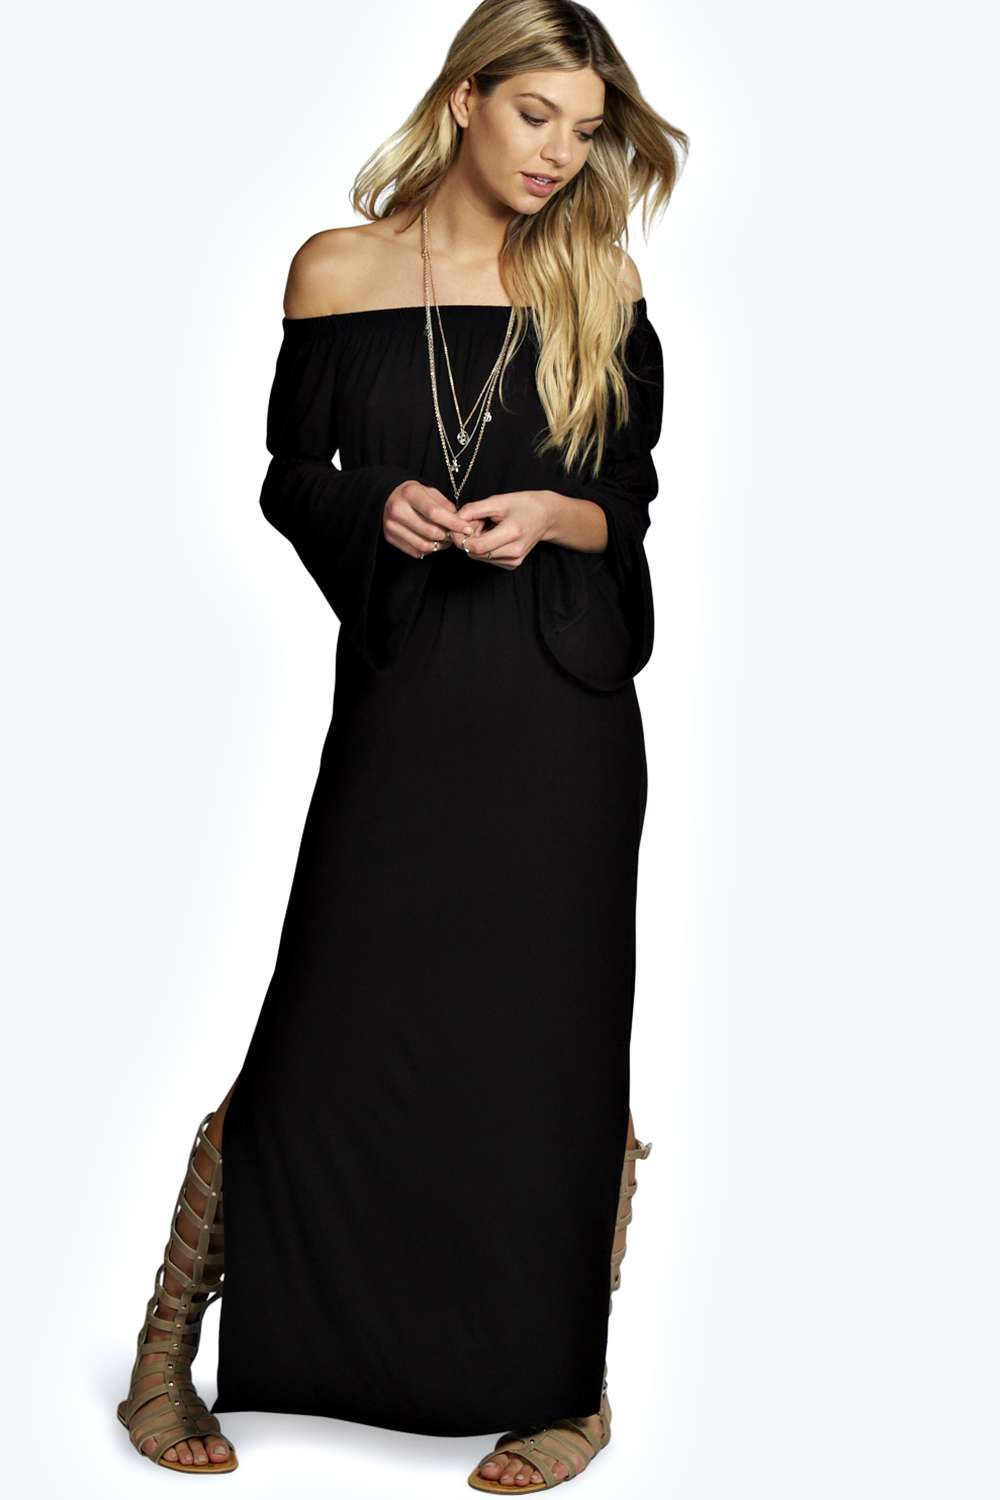 059020d52fdd Candy Wide Sleeve Off Shoulder Maxi Dress alternative image Black Off  Shoulder Dress